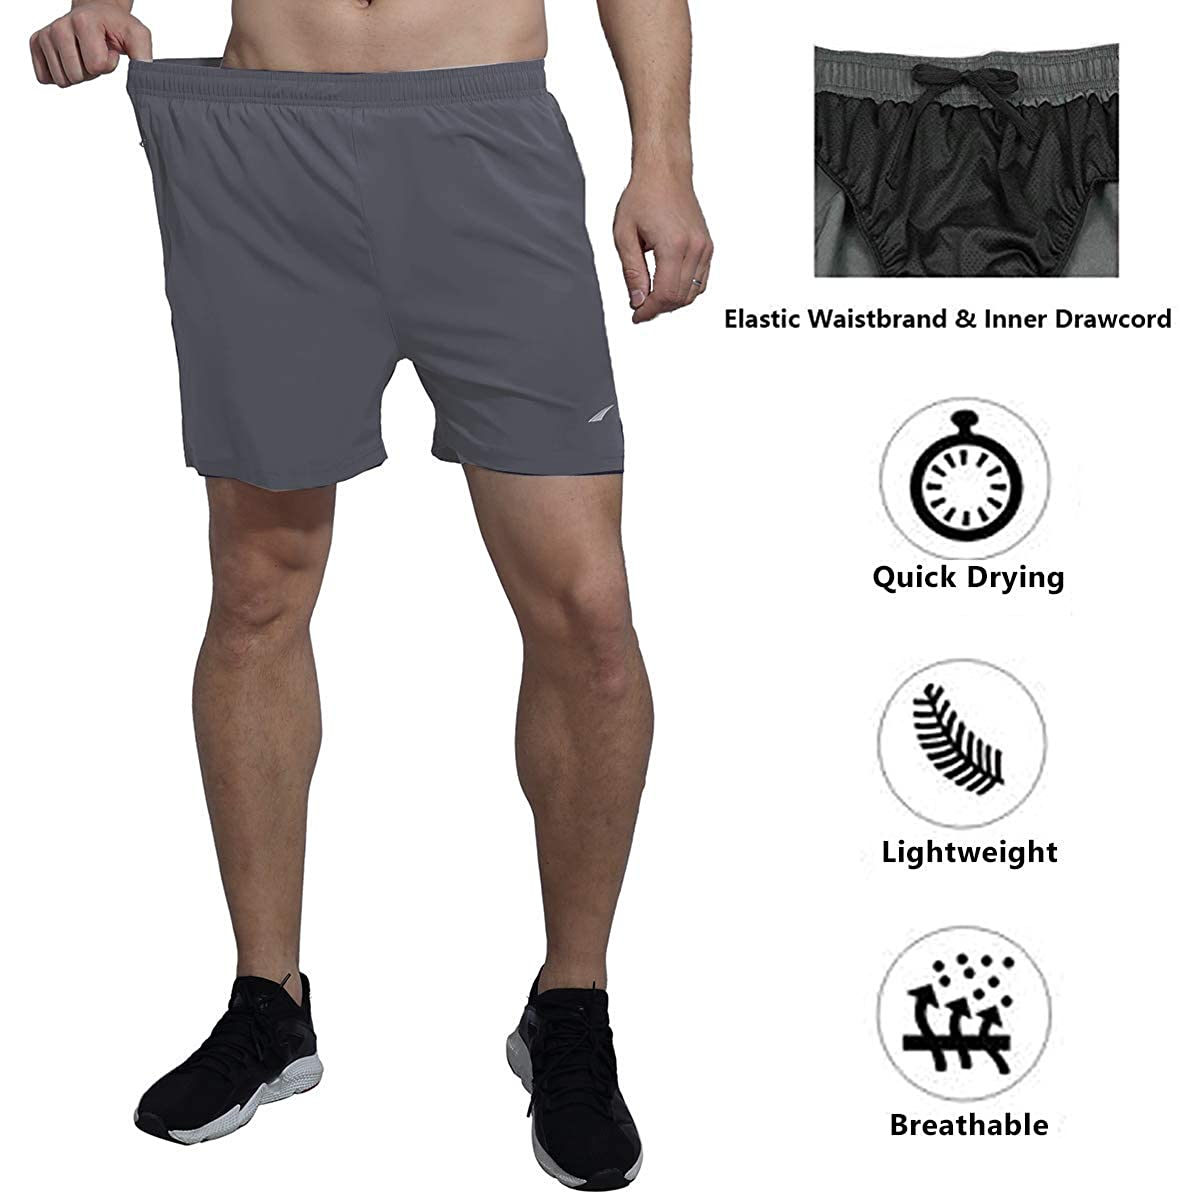 VAYAGER Mens Running Shorts 5 Inch Quick Dry Workout Athletic Performance Shorts with Liner and Zipper Pocket